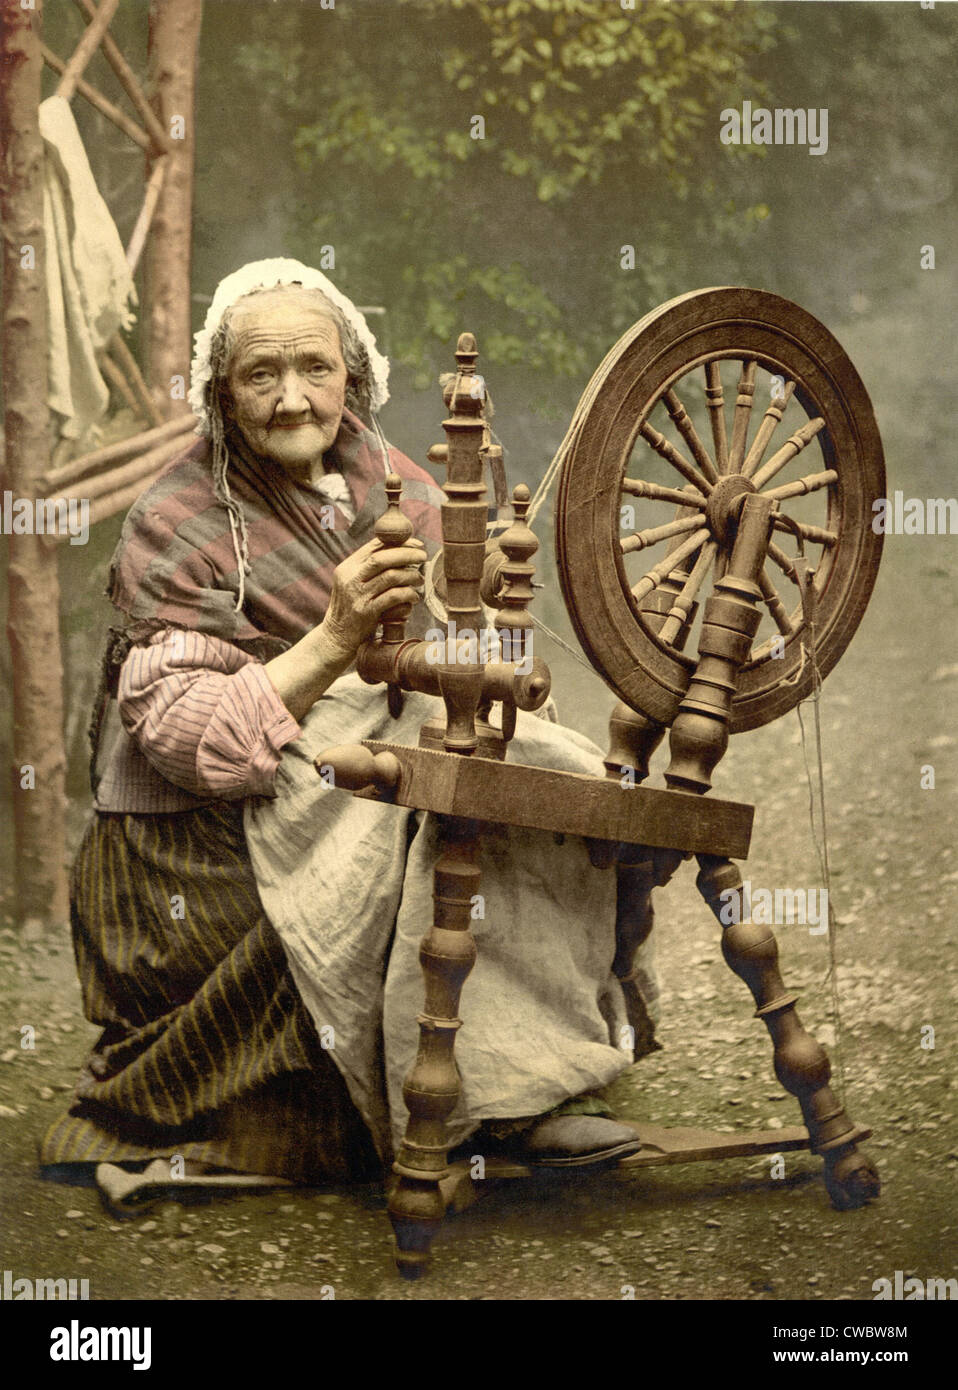 Elderly Irish Spinner working outdoors at her spinning wheel in the late 19th century.  While picturesque, home - Stock Image